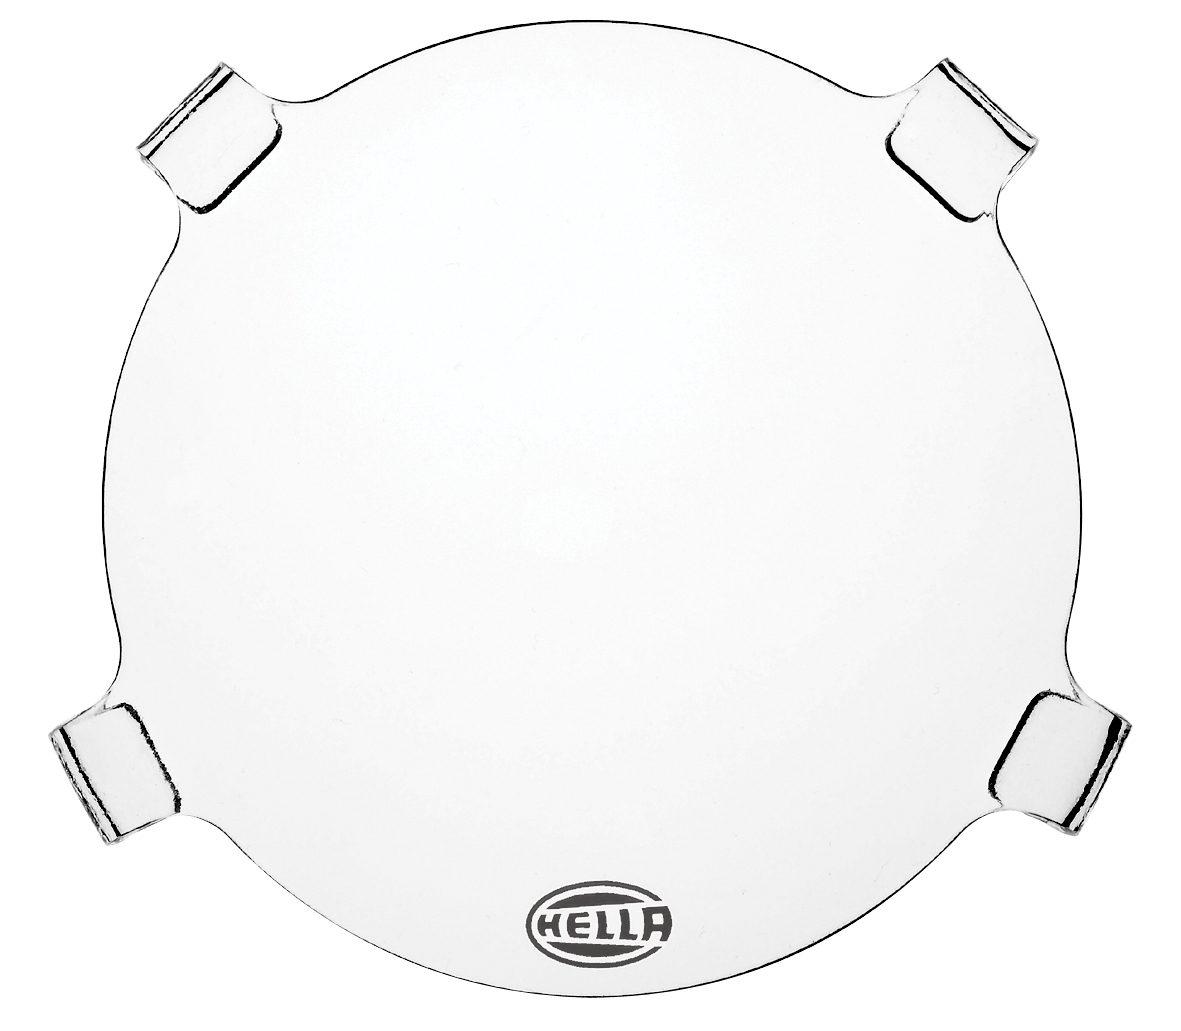 hella comet ff 500 series clear protective driving and fog light cover 8157 [ 1181 x 1031 Pixel ]